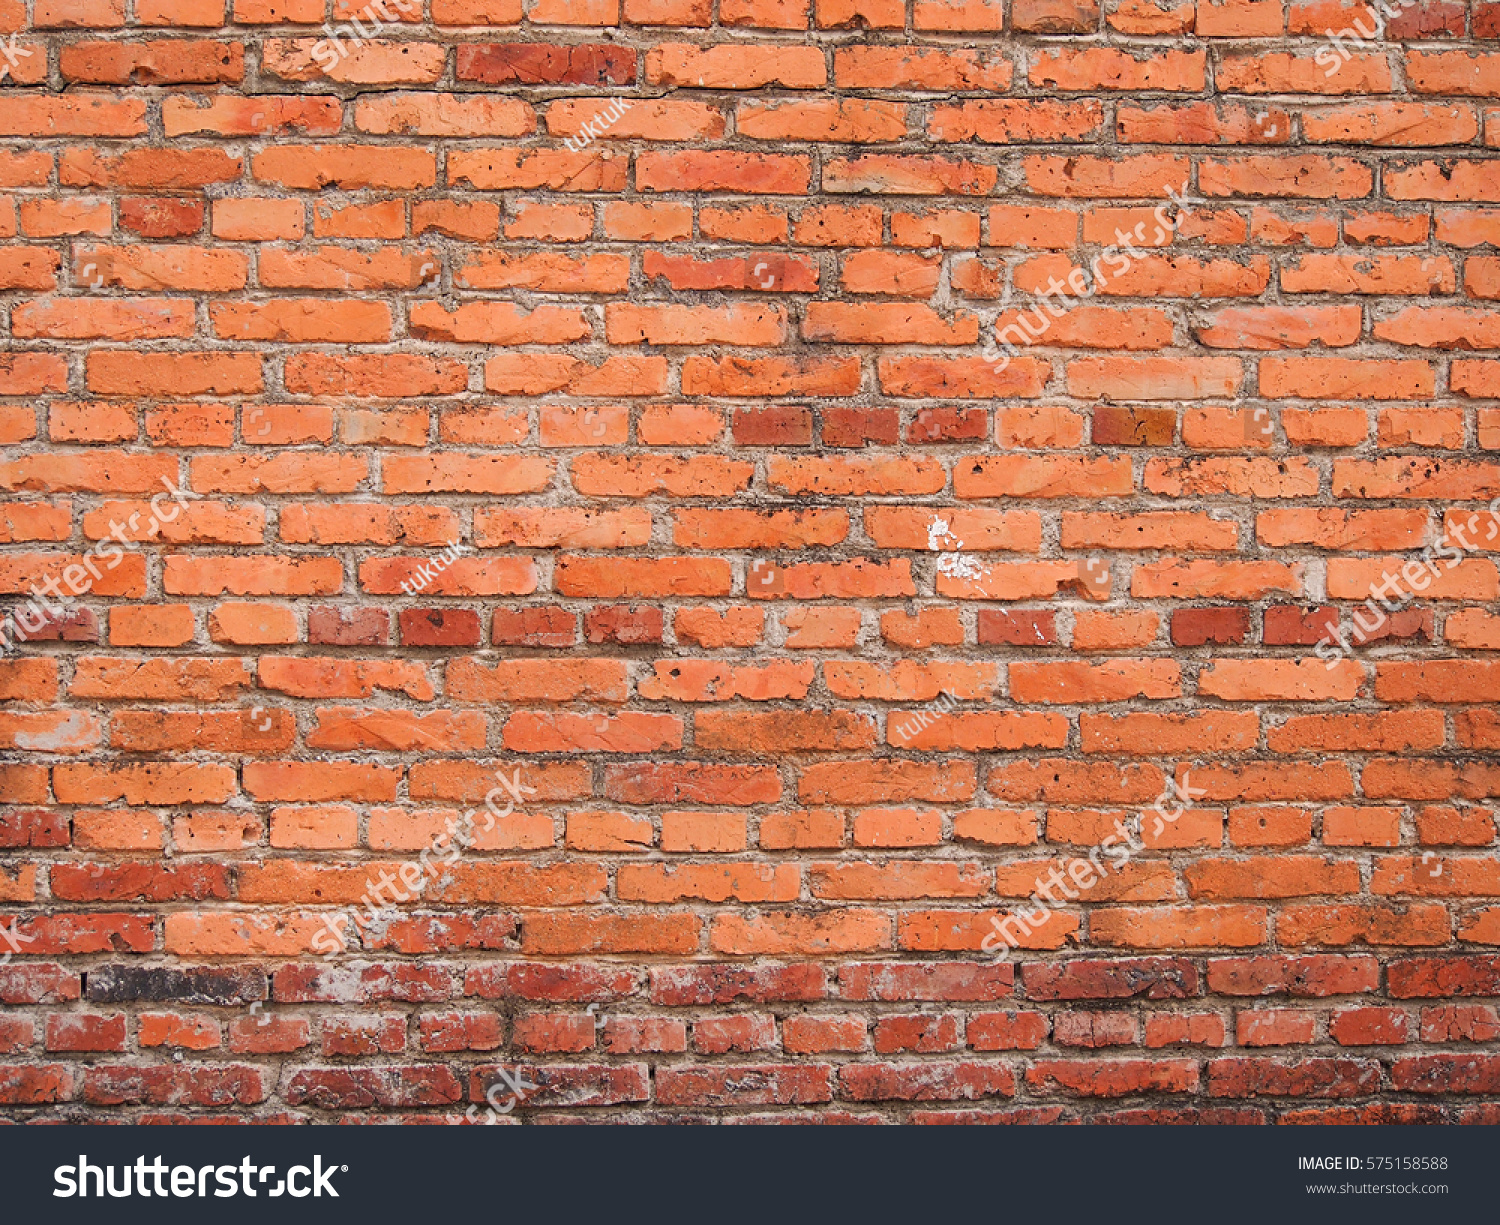 Wallpaper red brick wall texture grunge stock photo 575158588 shutterstock for Brick wallpaper interior design